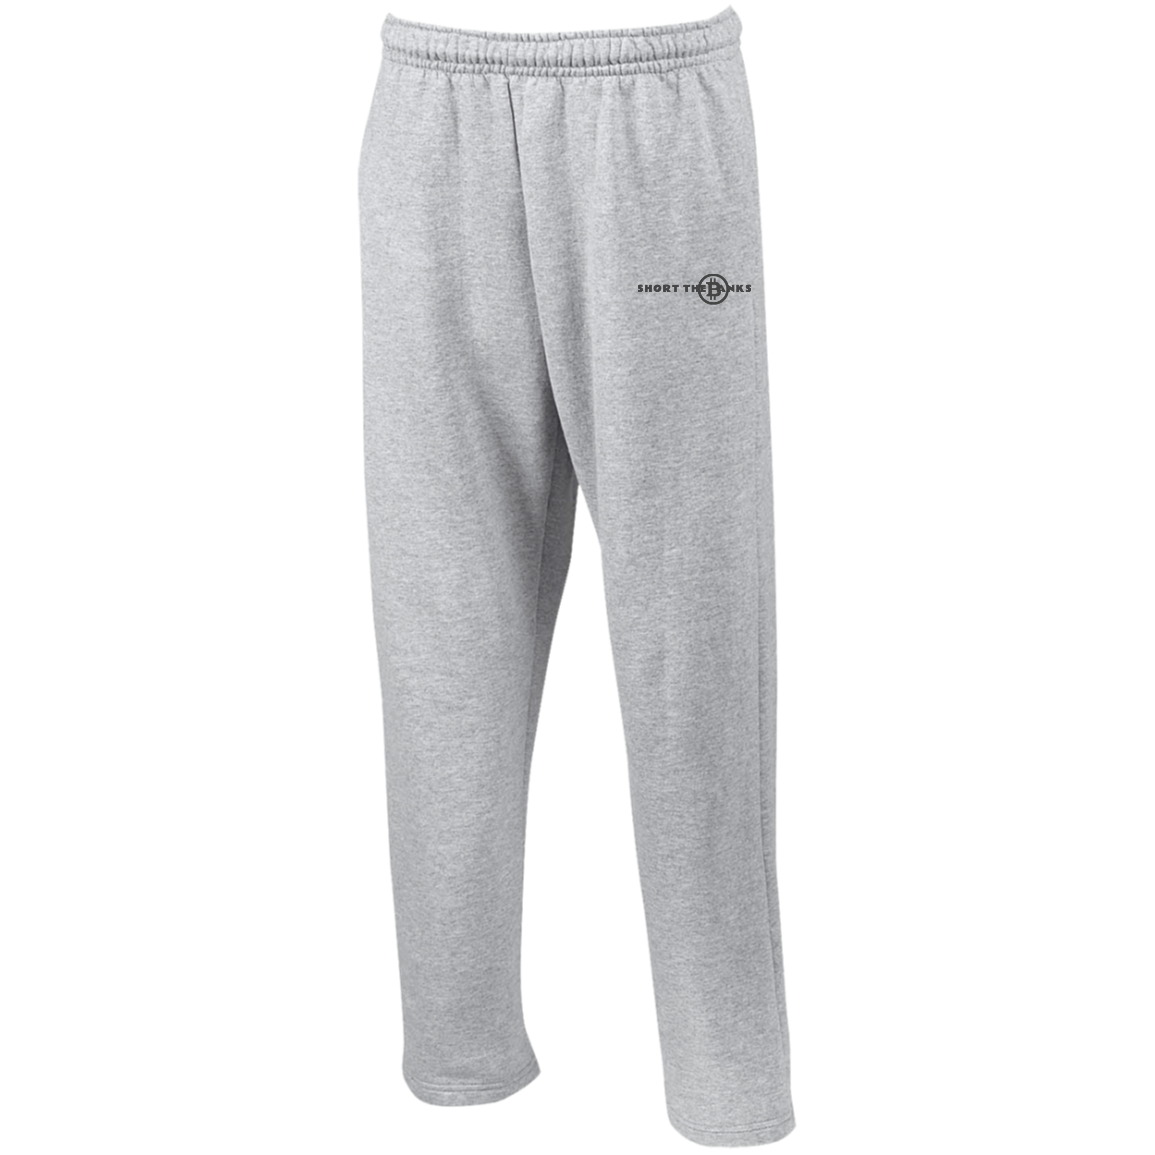 Short The Banks Open Bottom Sweatpants with Pockets